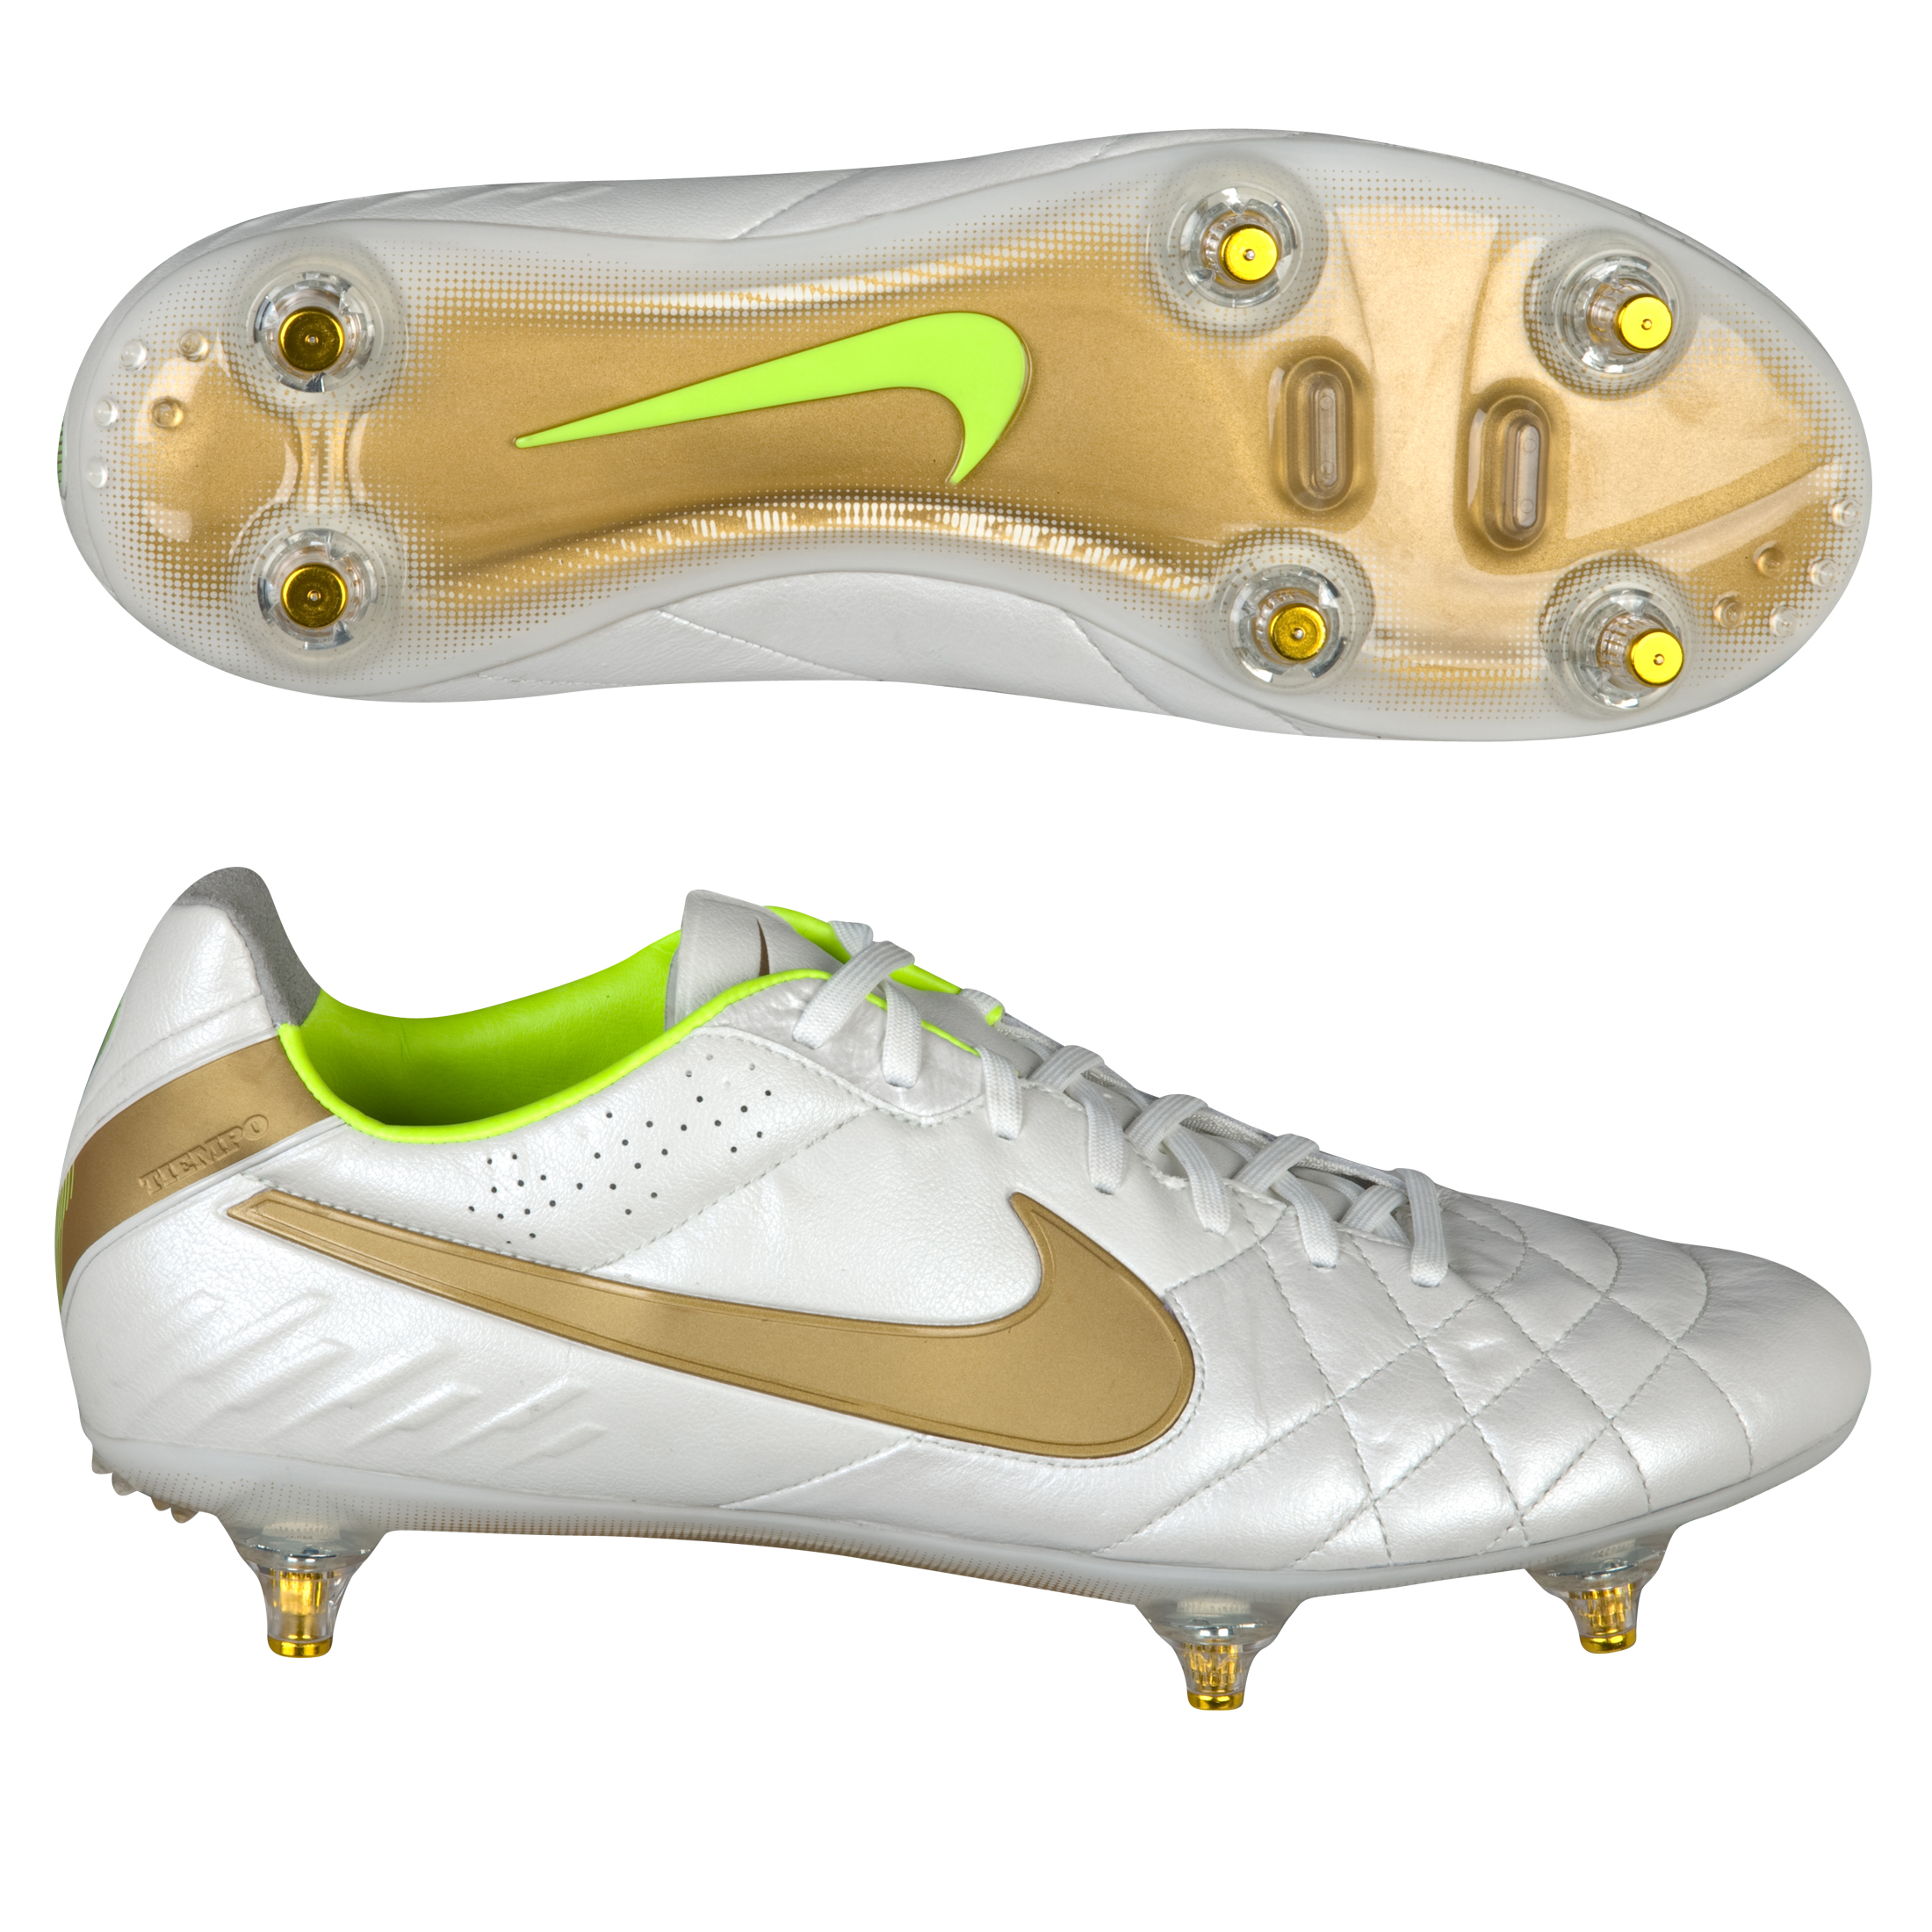 Nike Tiempo Legend IV Soft Ground Football Boots - Mtlc Summit Wht/Mtllc Gold/Vlt